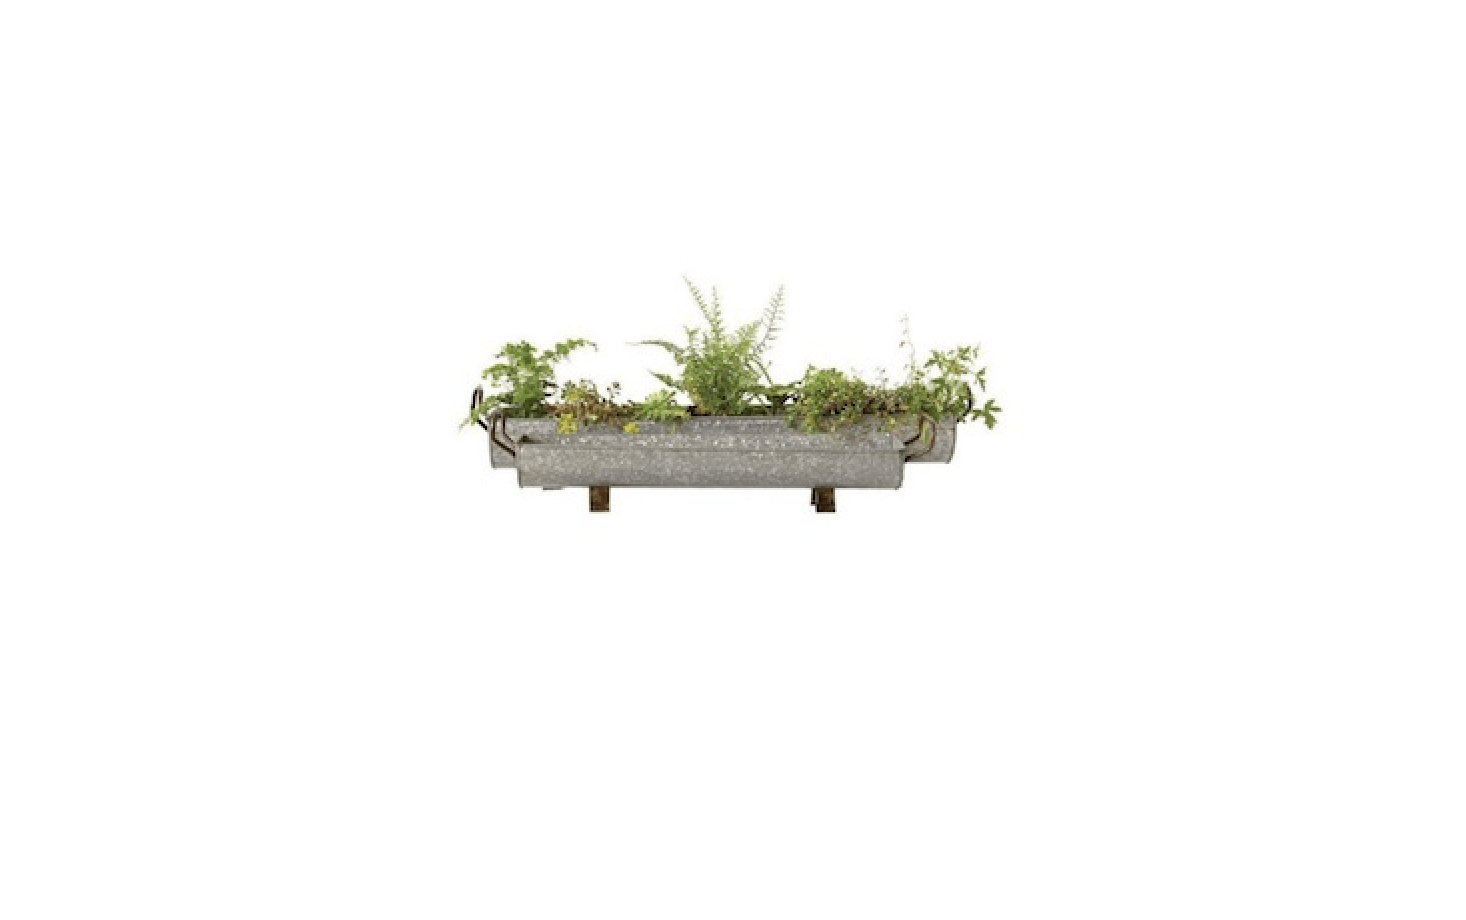 Super 10 Easy Pieces Galvanized Trough Planters Gardenista Short Links Chair Design For Home Short Linksinfo